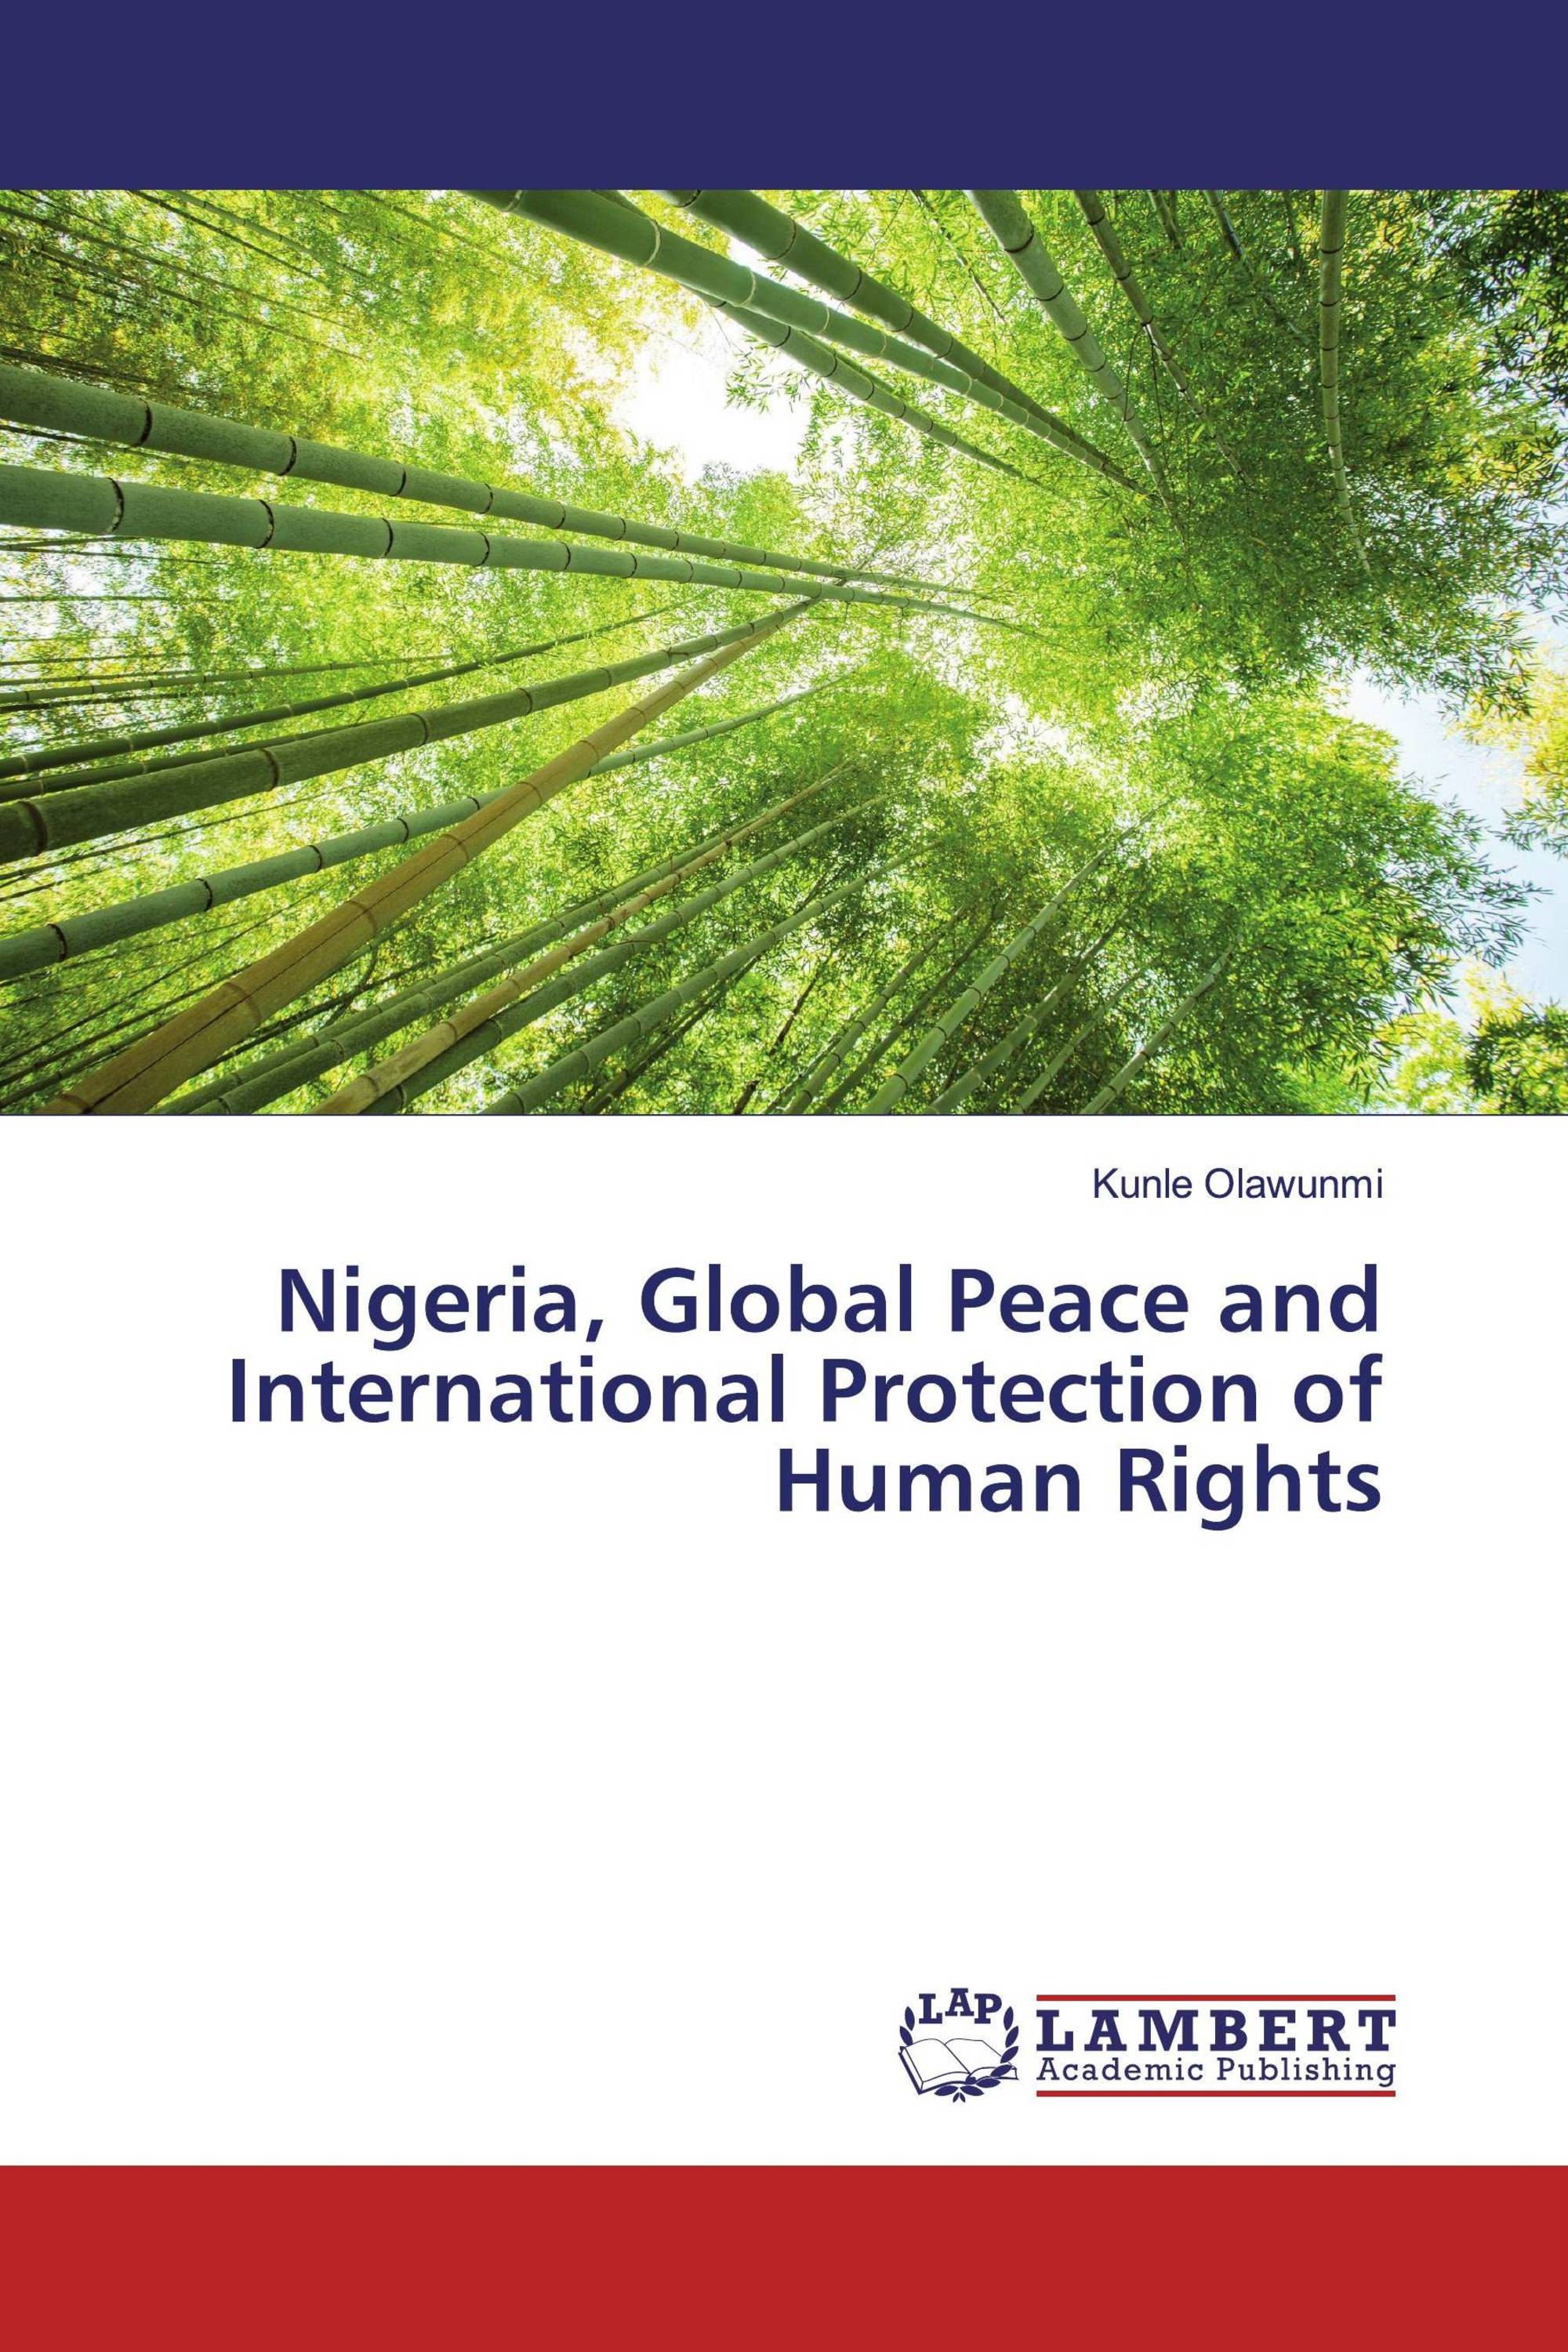 Nigeria, Global Peace and International Protection of Human Rights